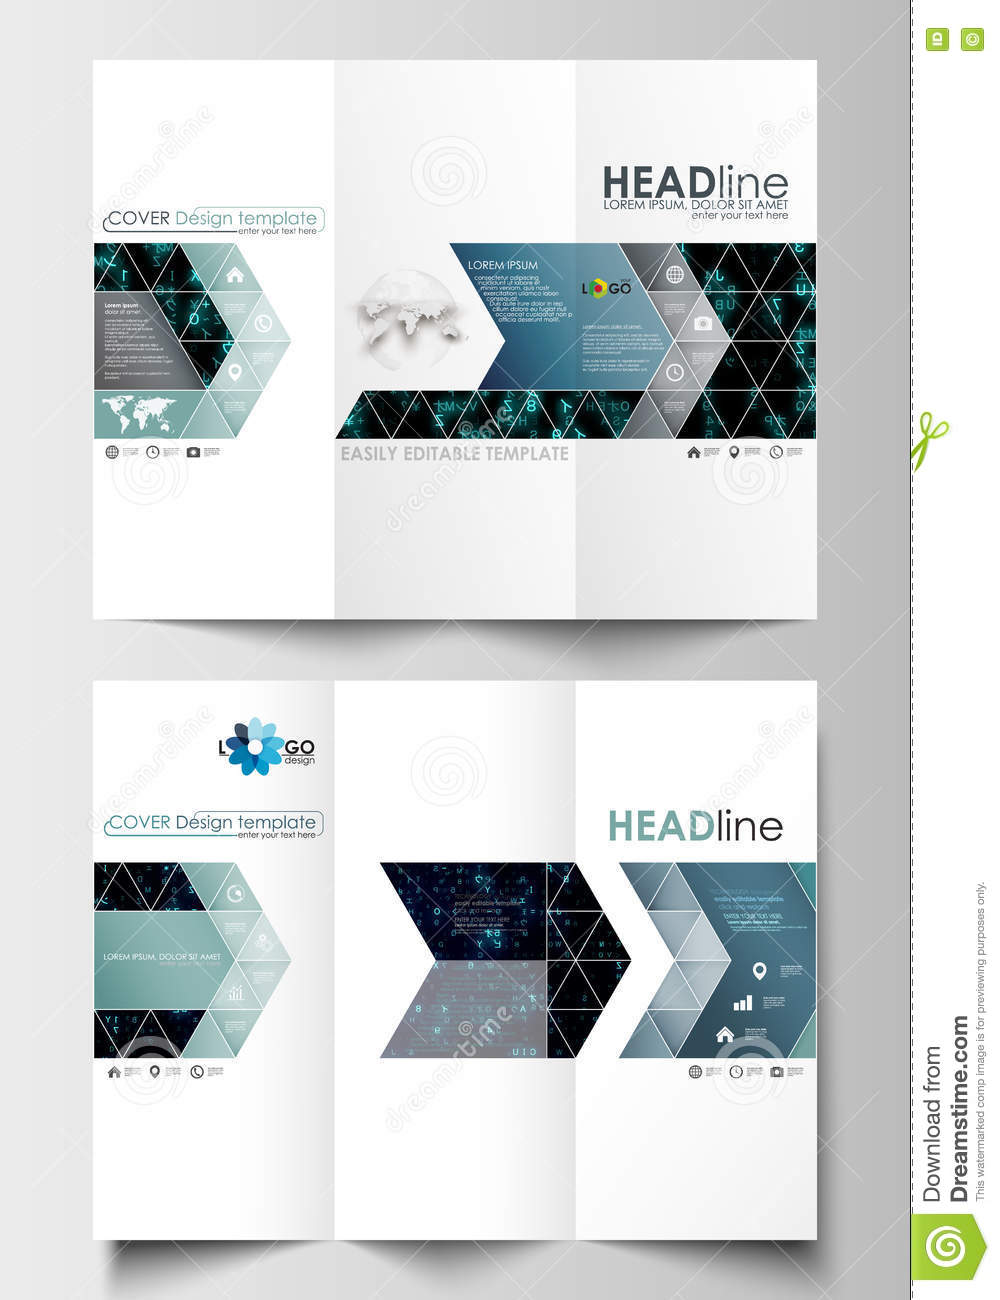 tri fold brochure business templates easy editable layout in flat